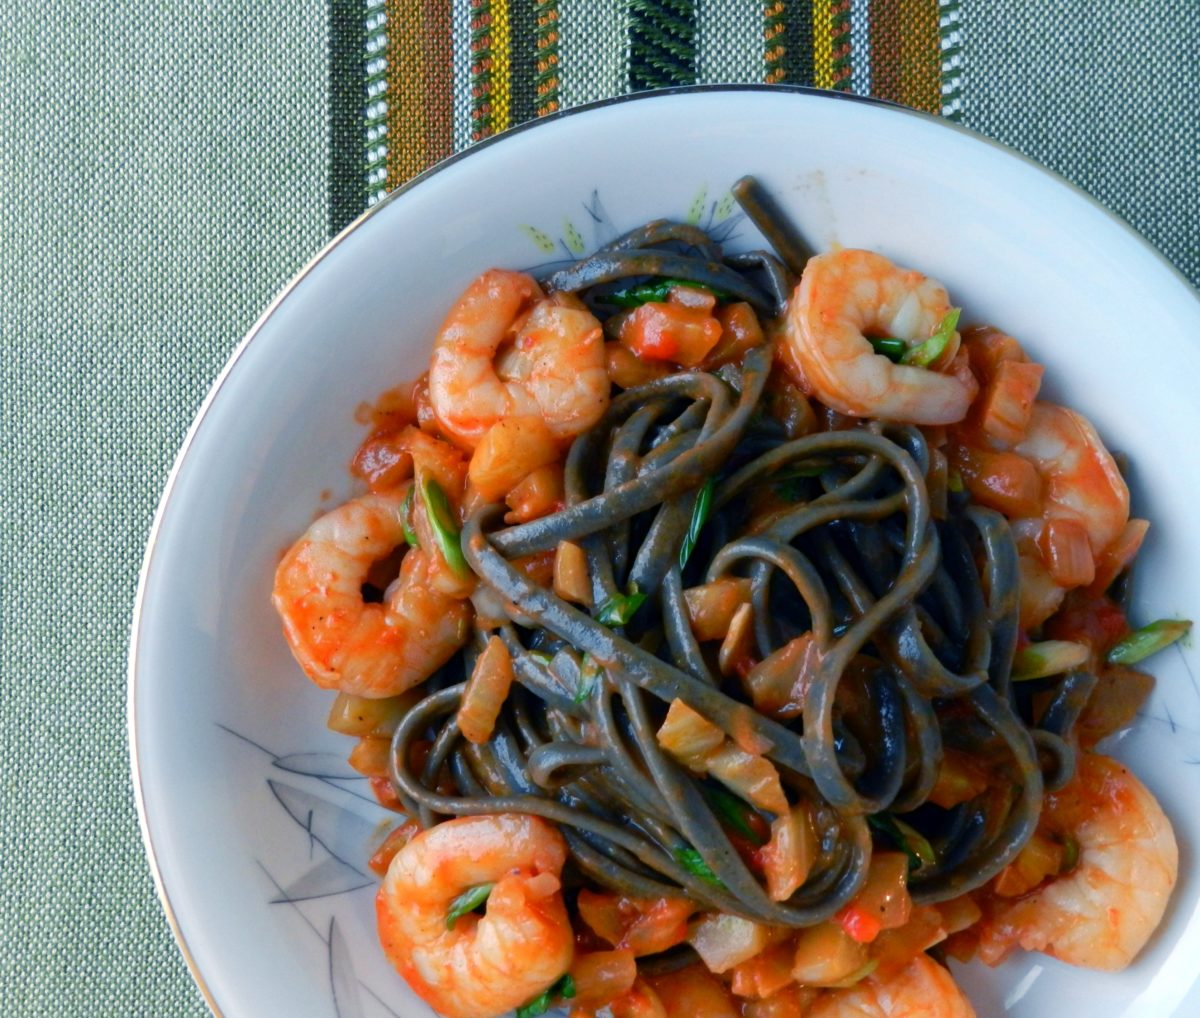 Black Fettuccine with Fennel, Shrimp, and Chili Oil